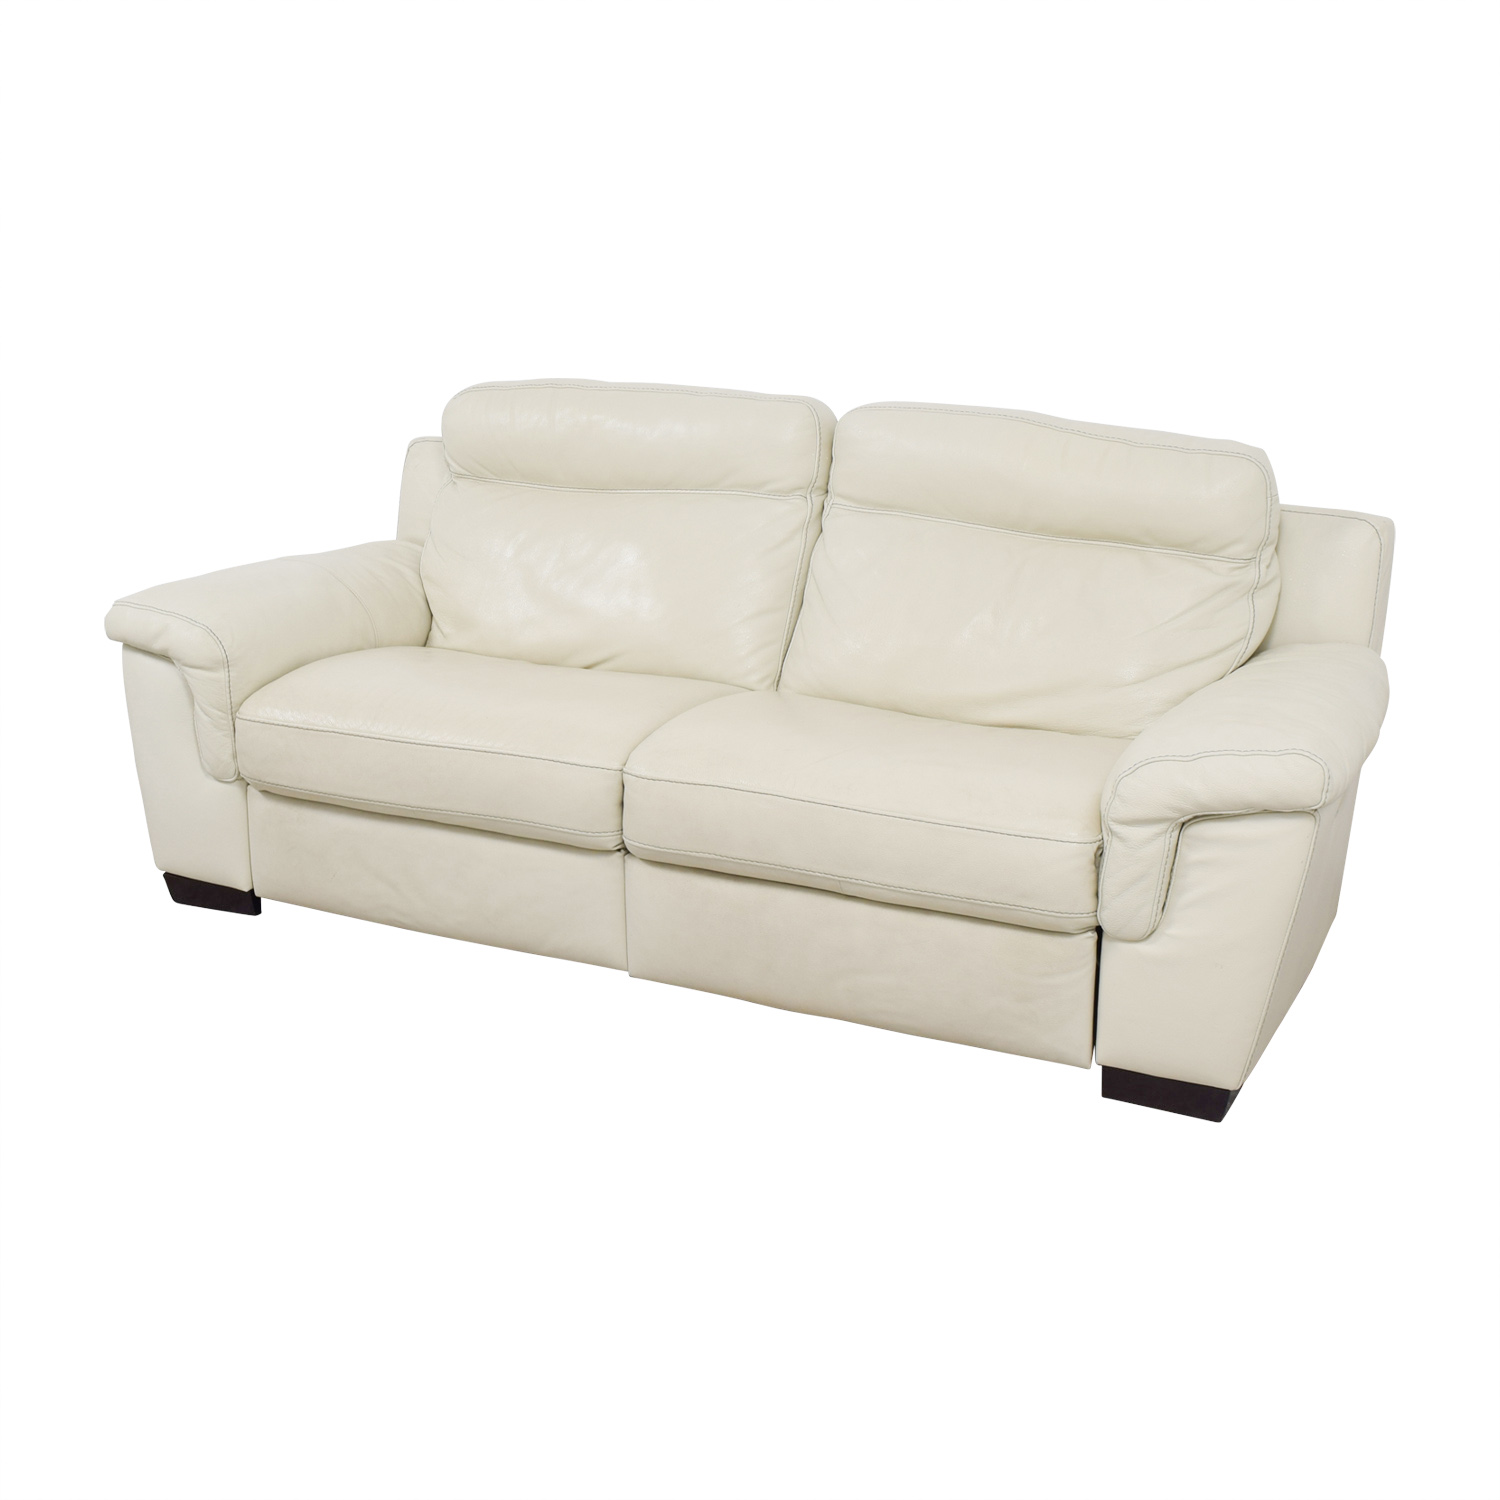 Exceptionnel 69% OFF   Macyu0027s Macyu0027s Off White Leather Recliner Sofa / Chairs